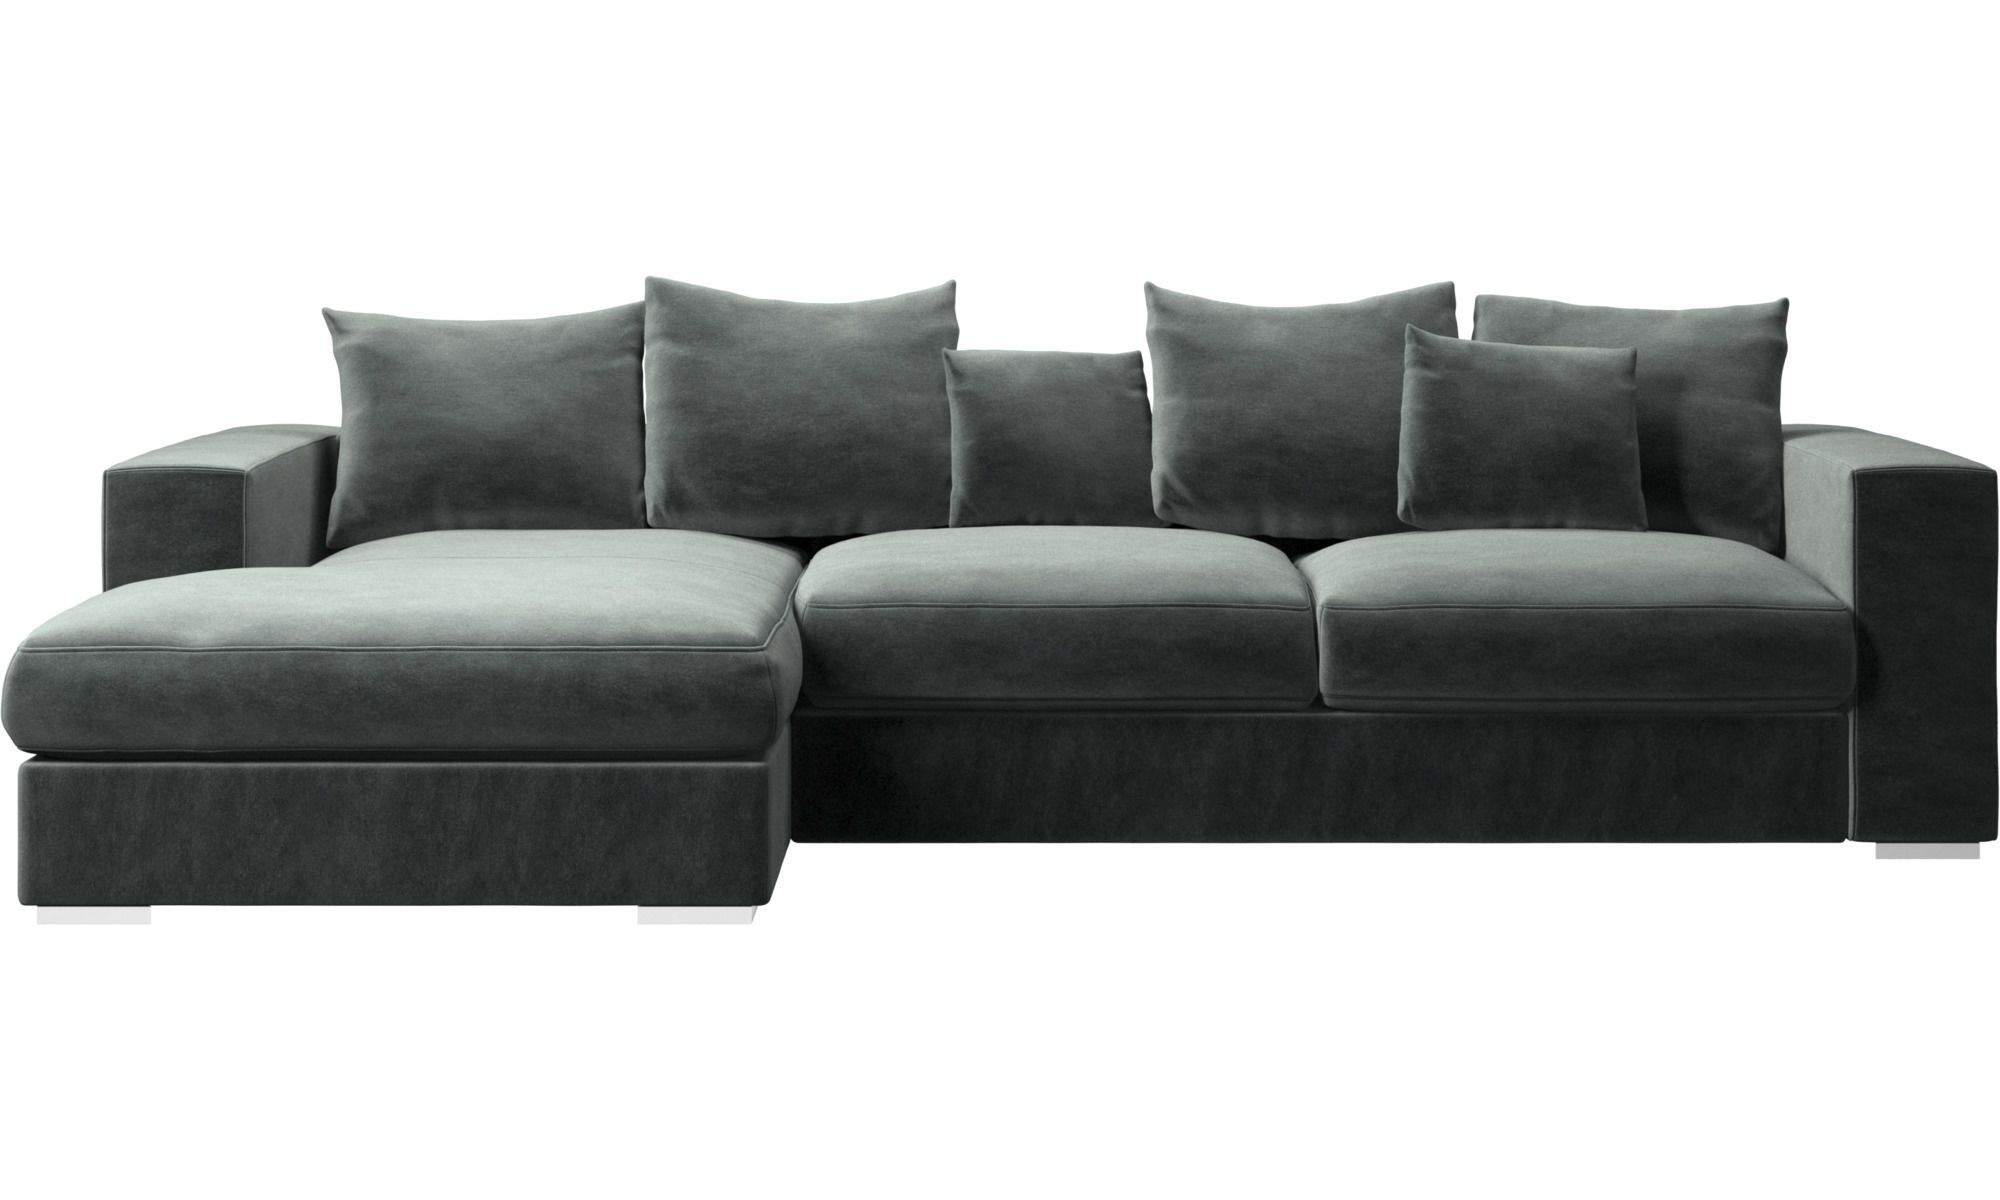 Chaise Lounge Sofas Cenova Sofa With Resting Unit Comfortable Chaise Chaise Lounge Sofa Sofa